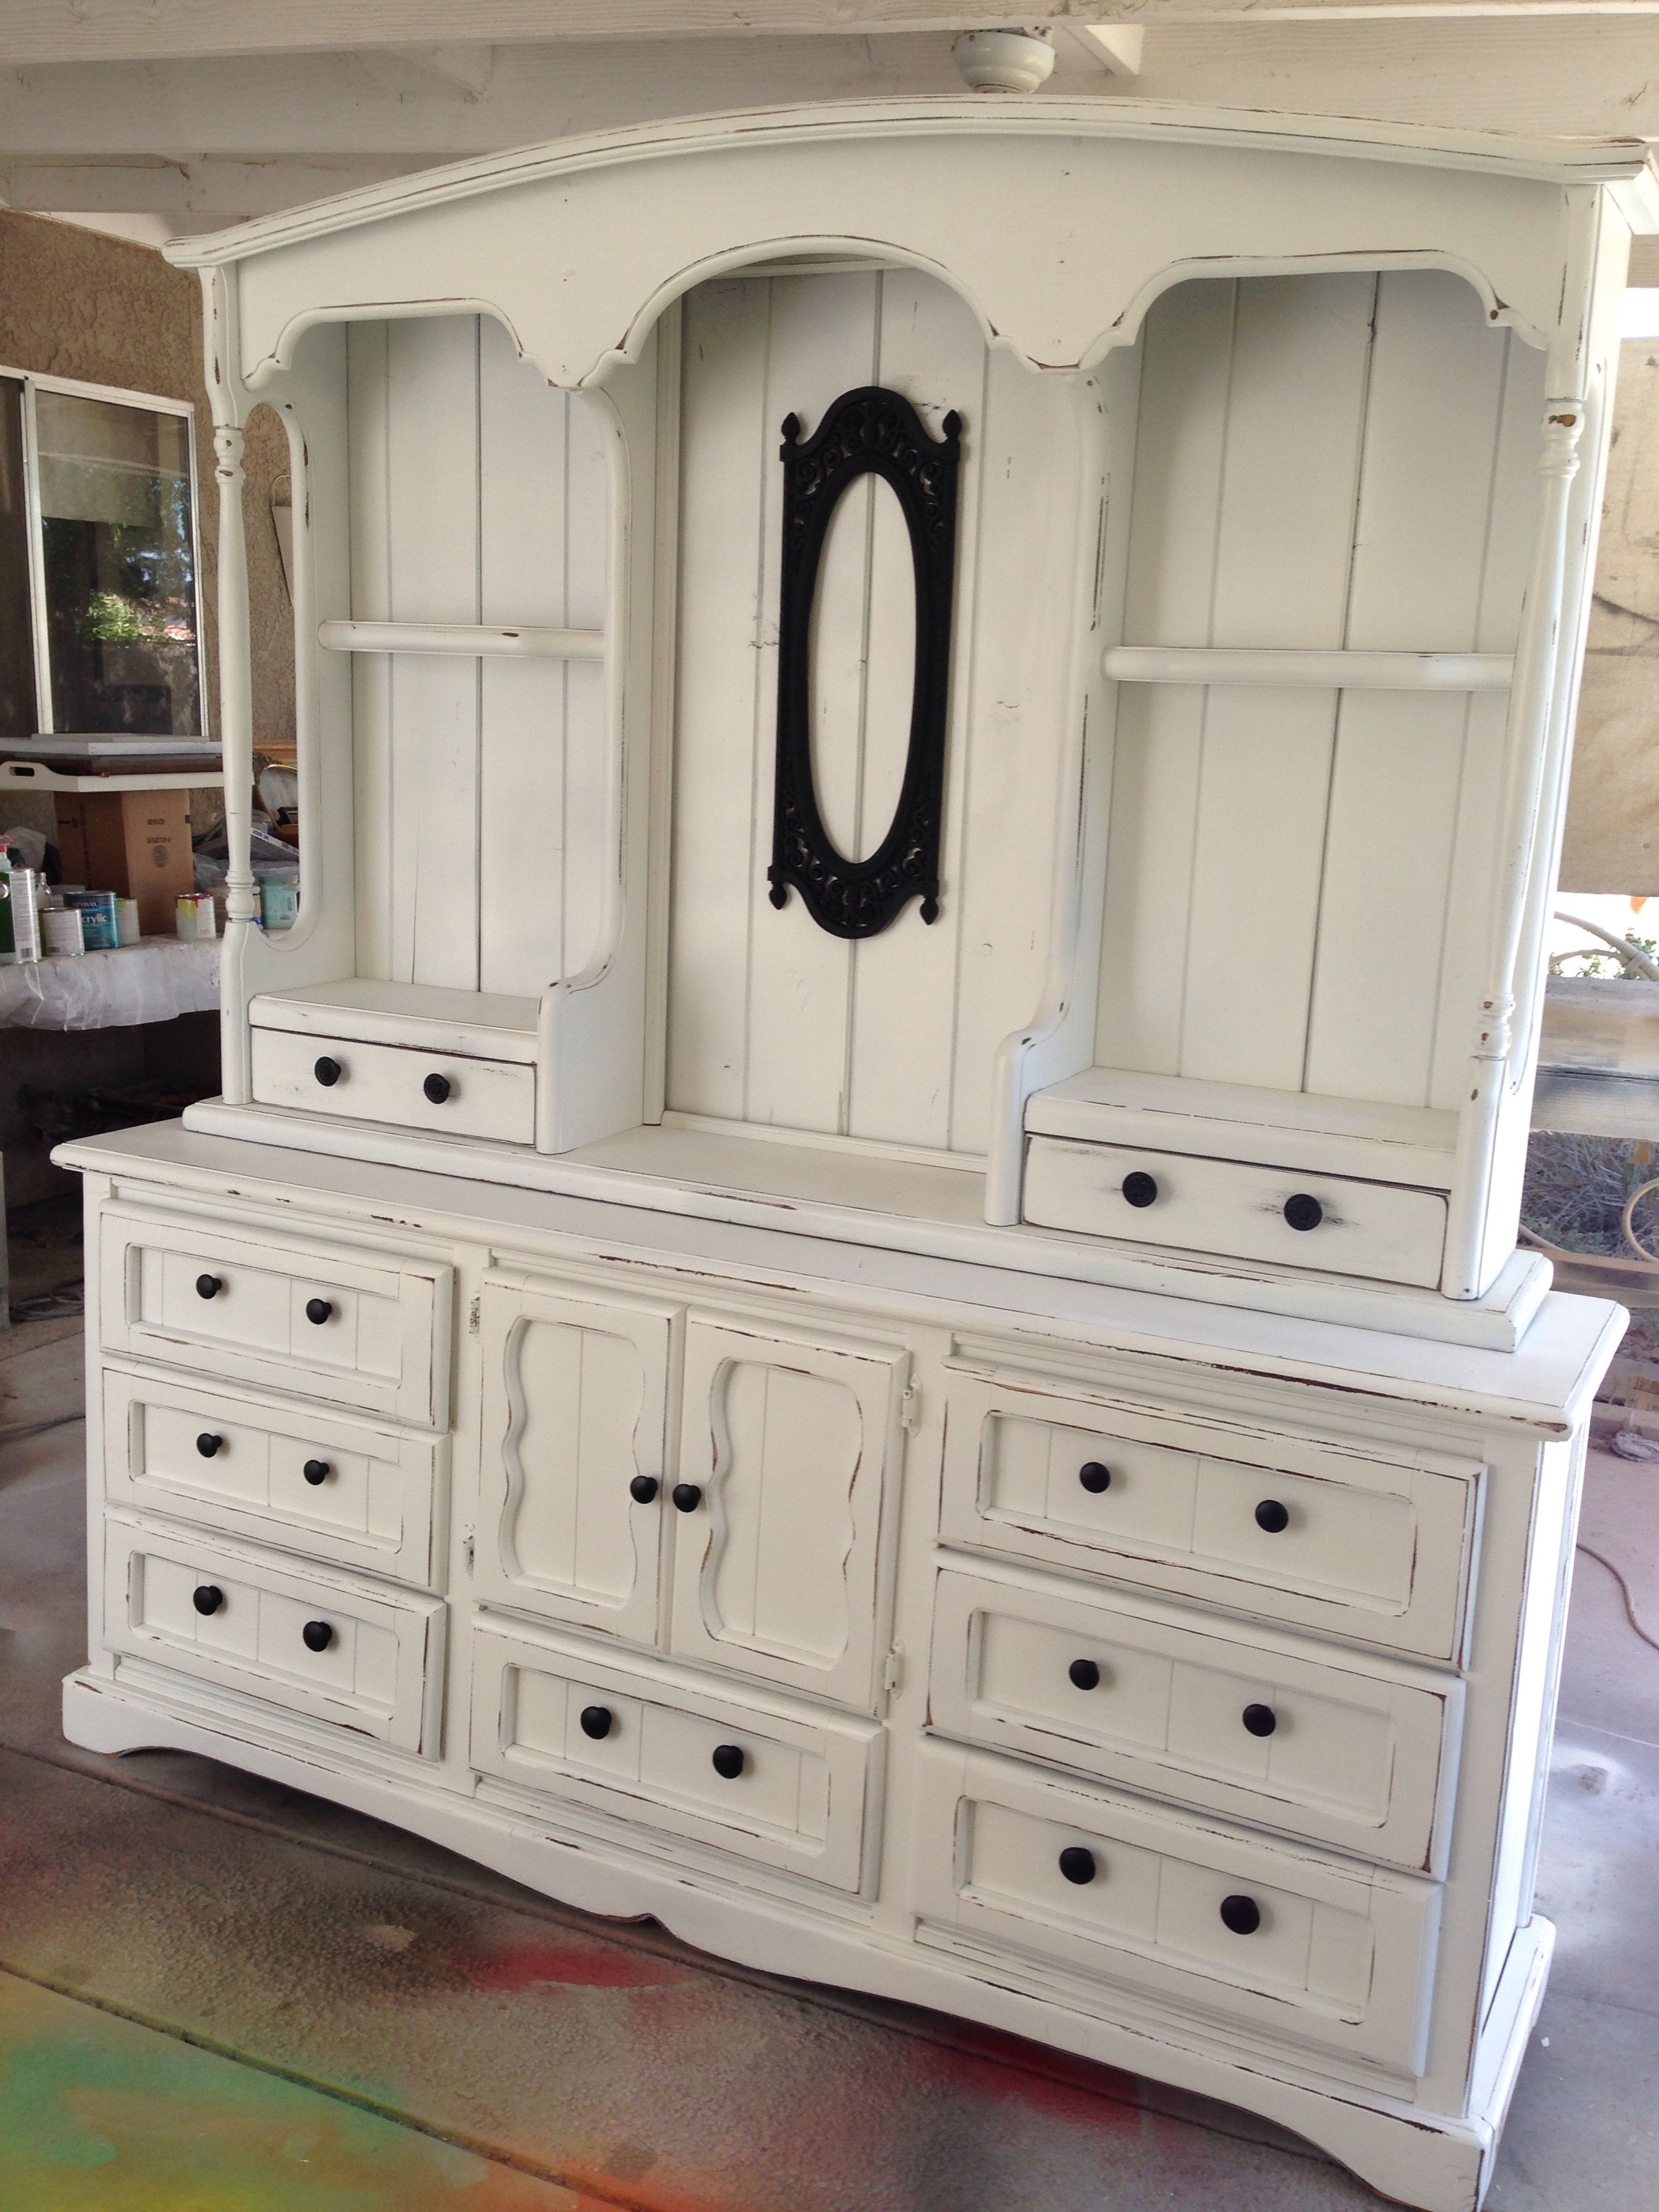 Old 70S Dresser Refreshed With White Paint And Black Knobs